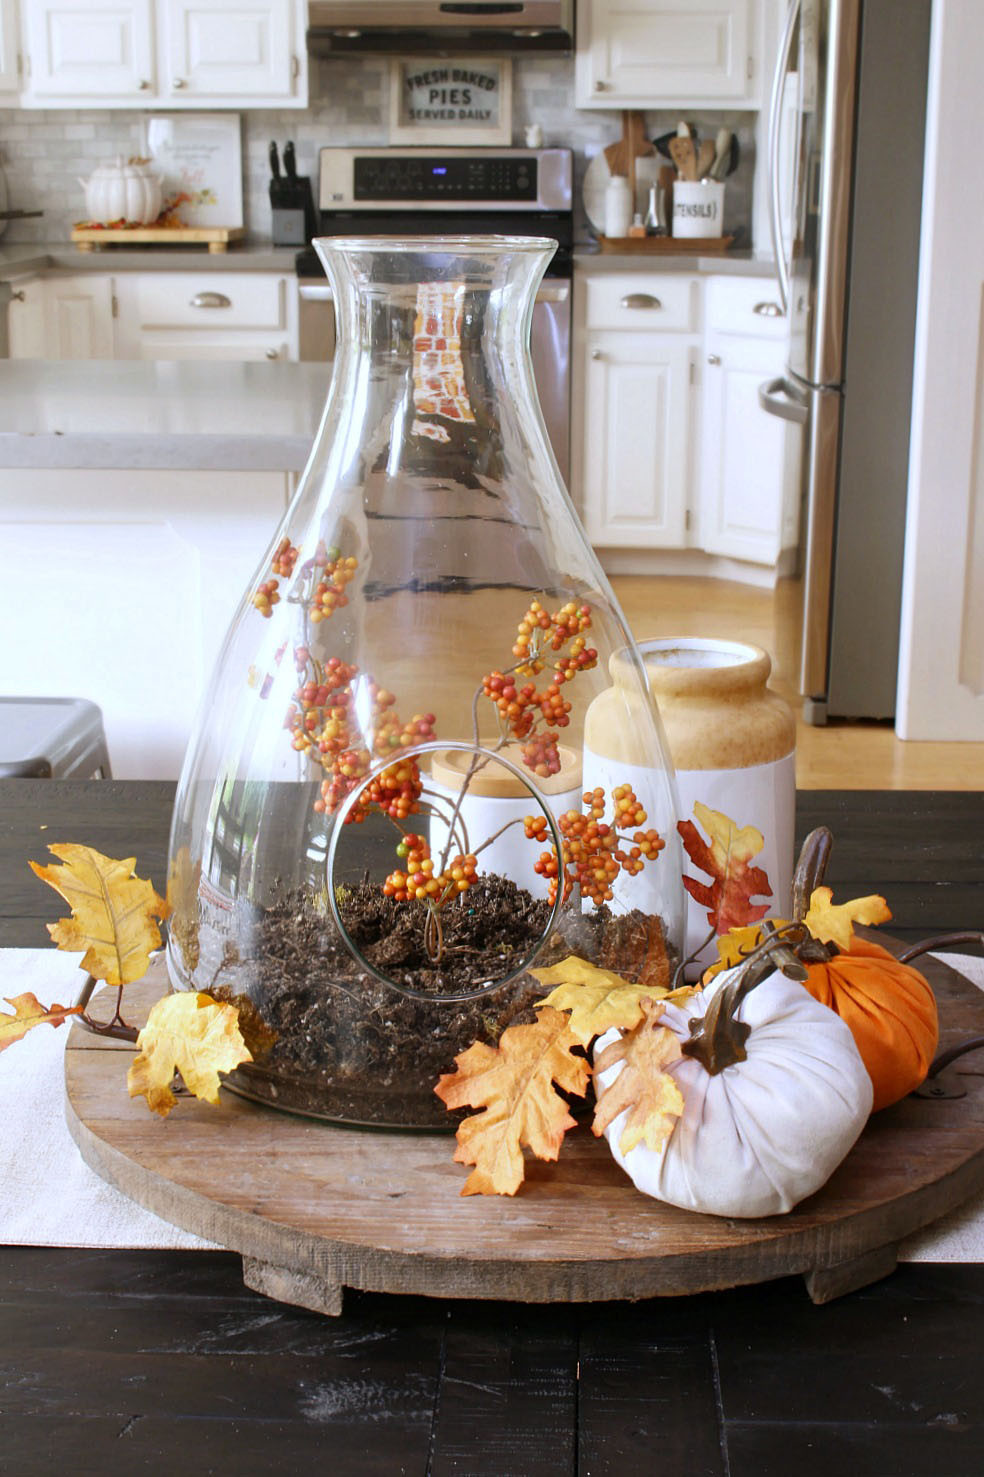 At Home Fall Decor  Fall Home Decor Ideas Fall Home Tours Clean and Scentsible